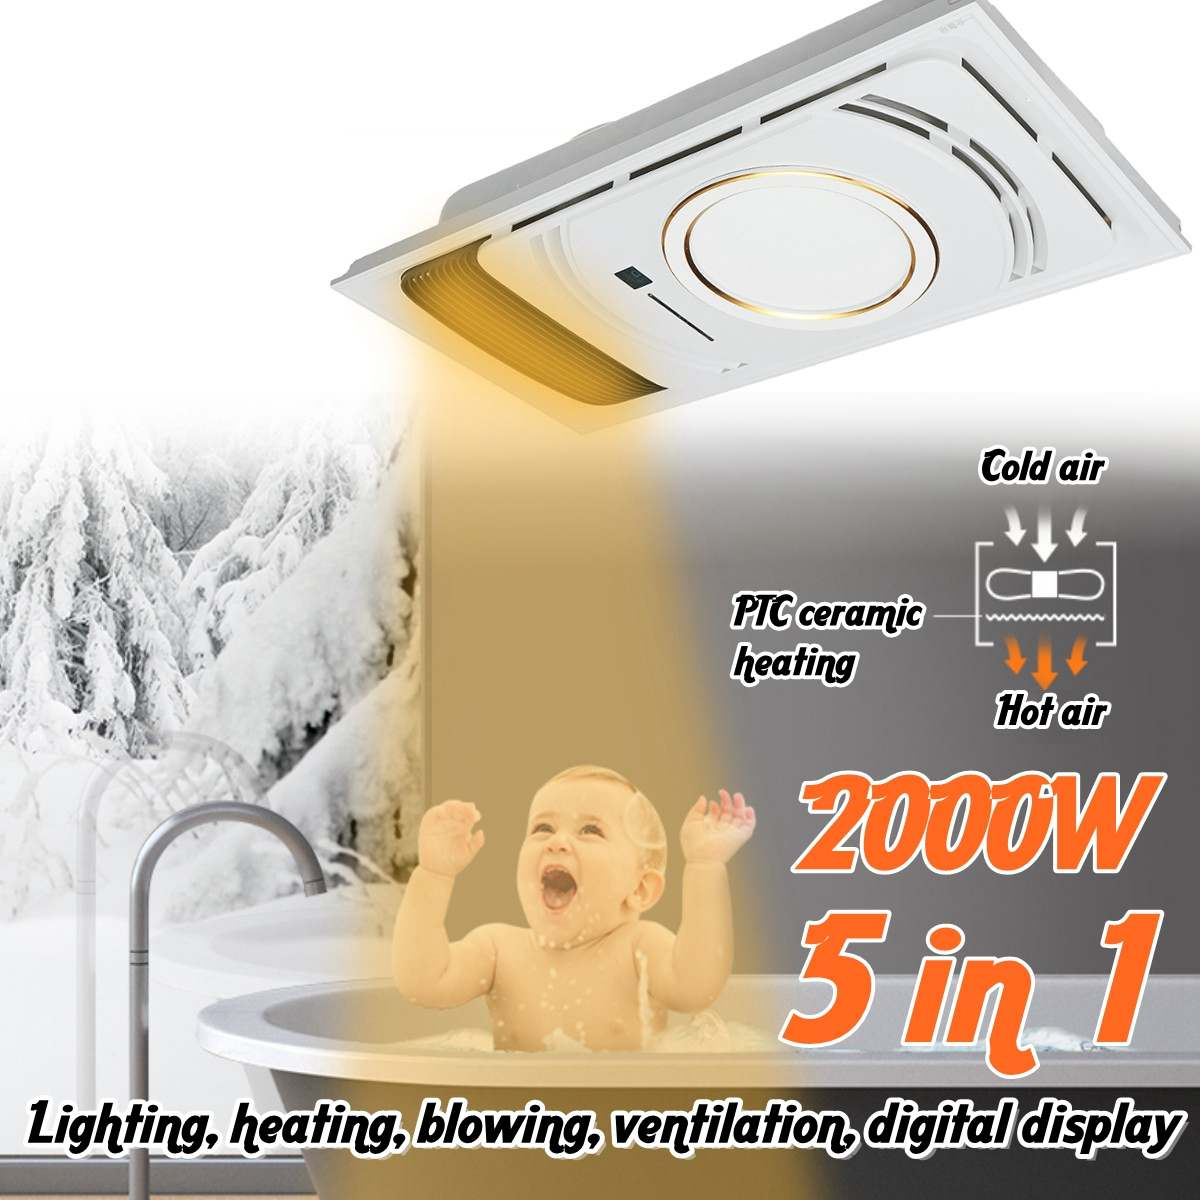 2 In 1 Bathroom Heater Light 5 In 1 Bathroom Ceiling Electric Heater 2kw 220v Exhaust